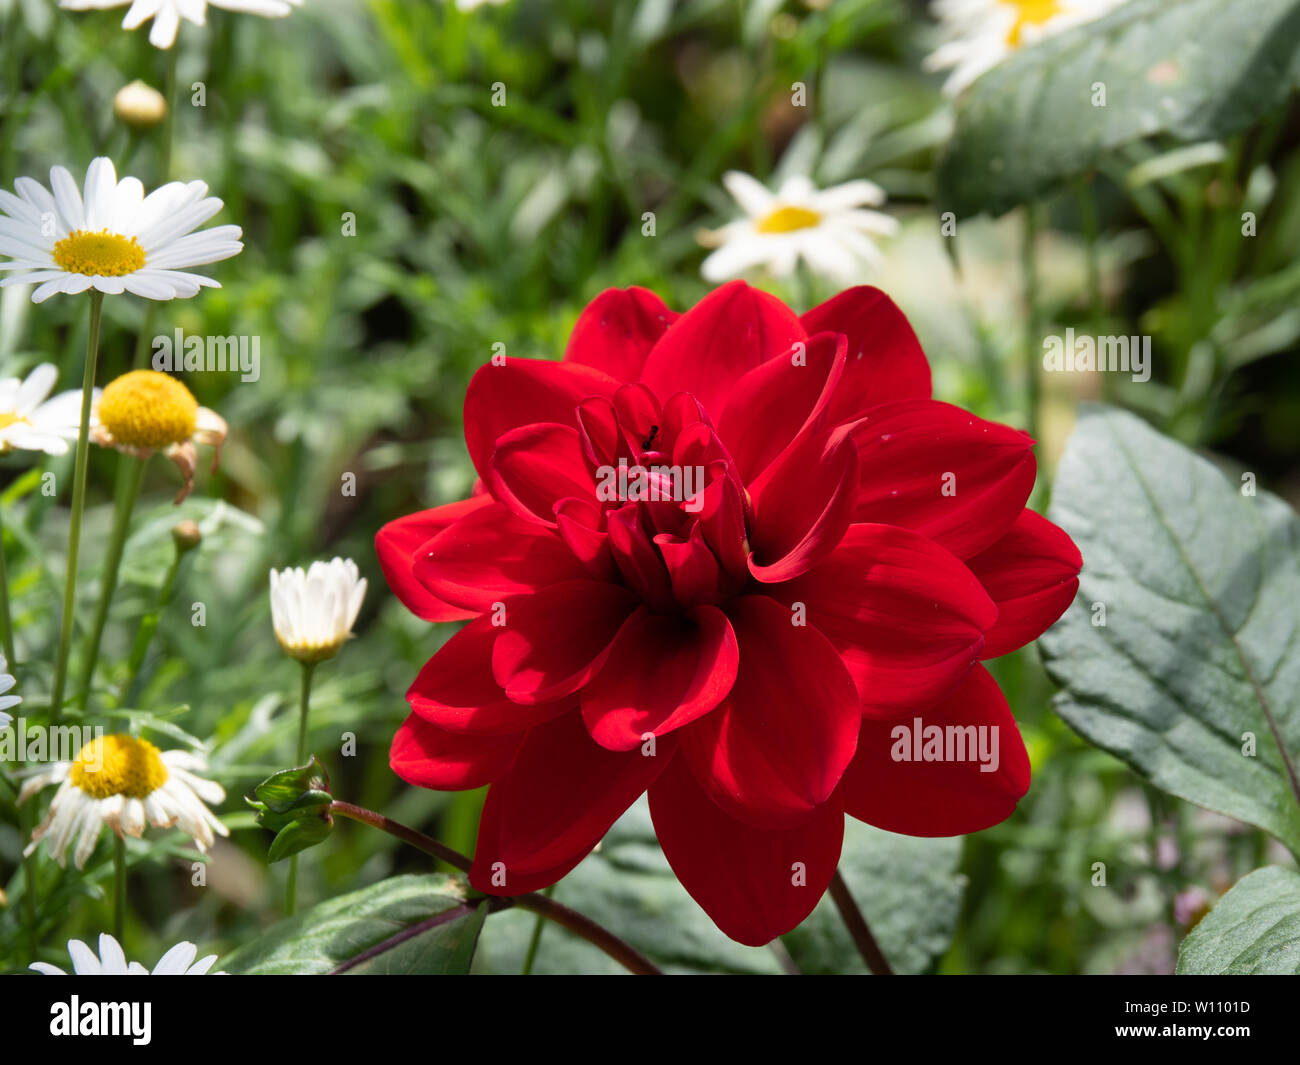 Single Red Dahlia in perfect condition and shape, showing bright color in garden. Red Dahlia is a symbol of power, strength and importance. Stock Photo